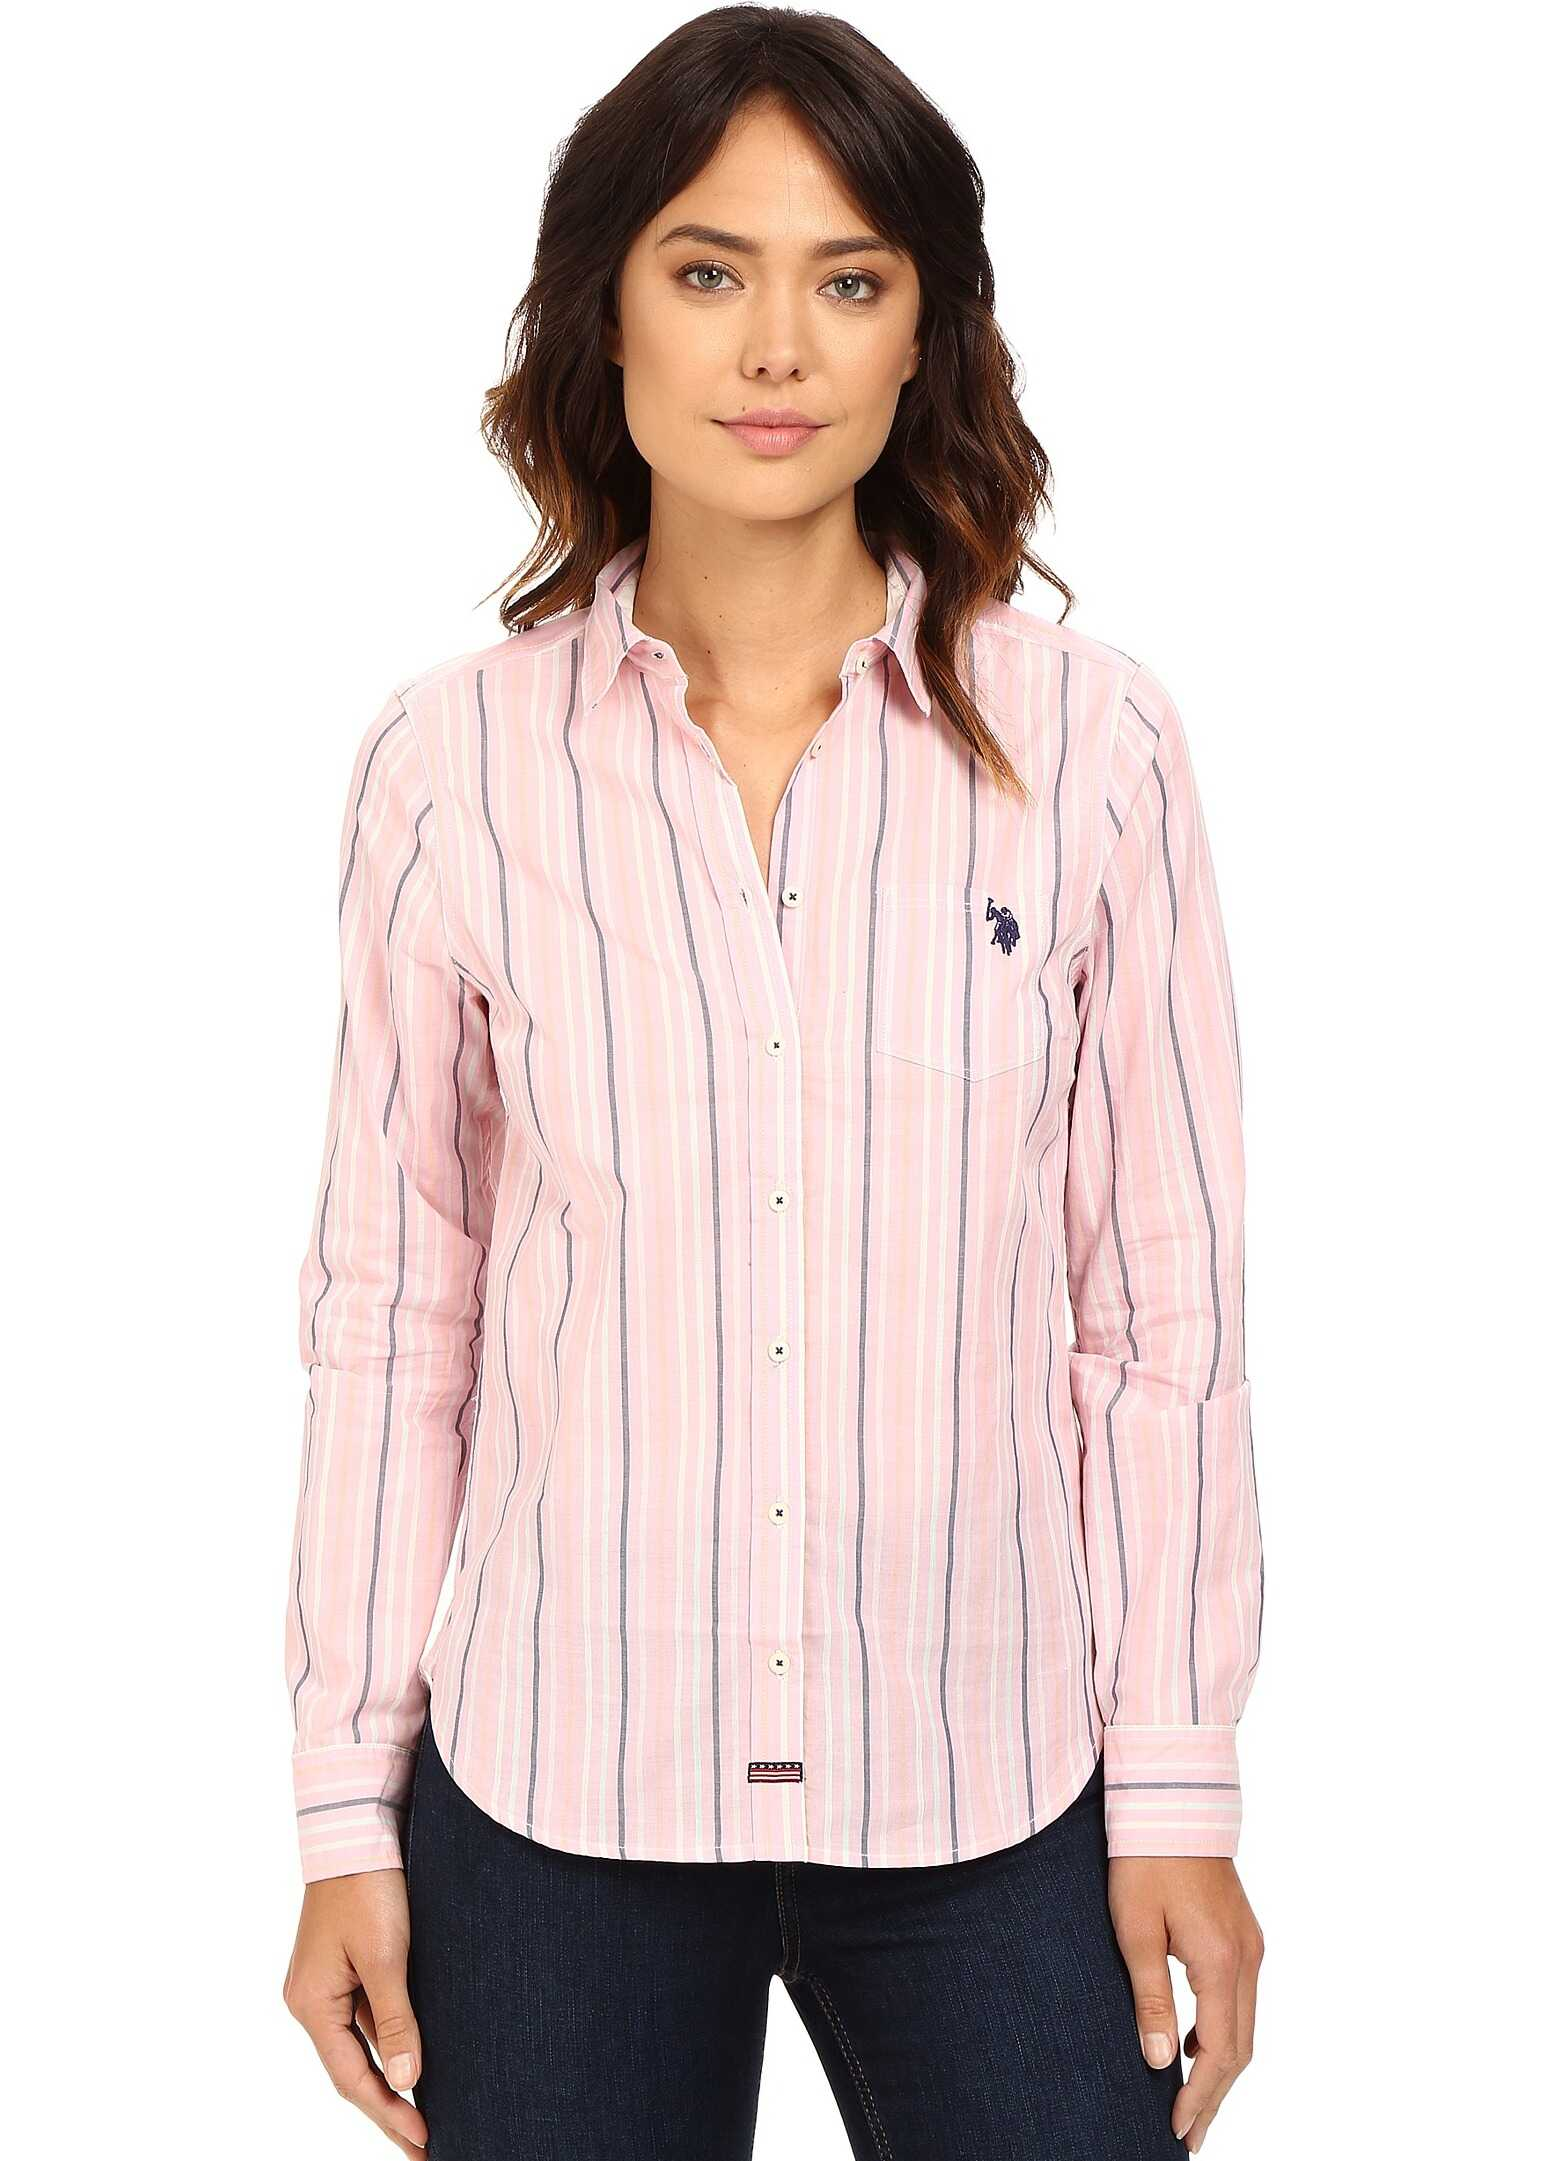 U.S. POLO ASSN. Casual Striped Blouse Prism Pink